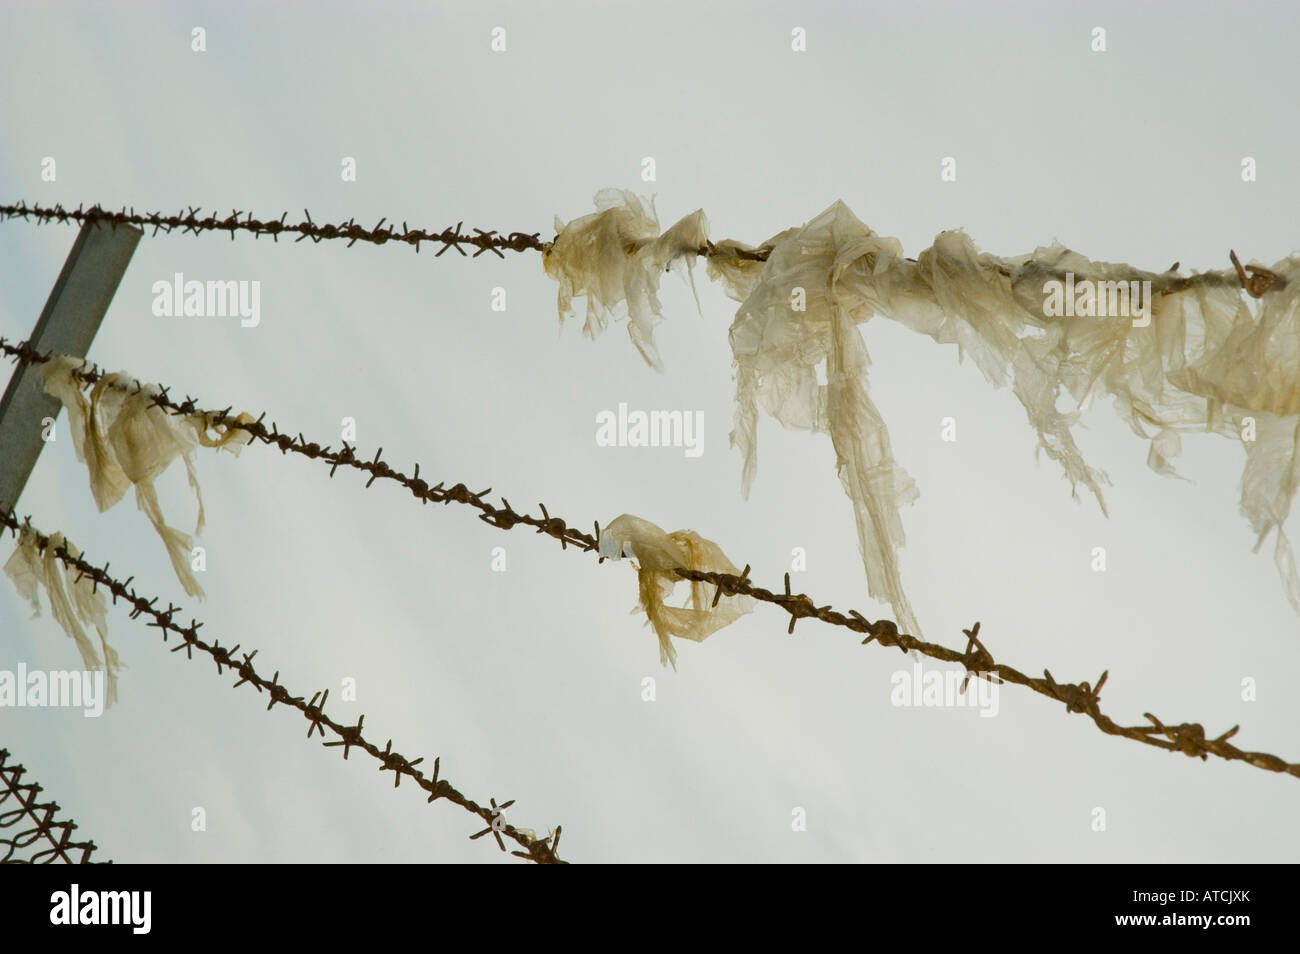 Plastic bags on barbed wire Stock Photo: 16275930 - Alamy